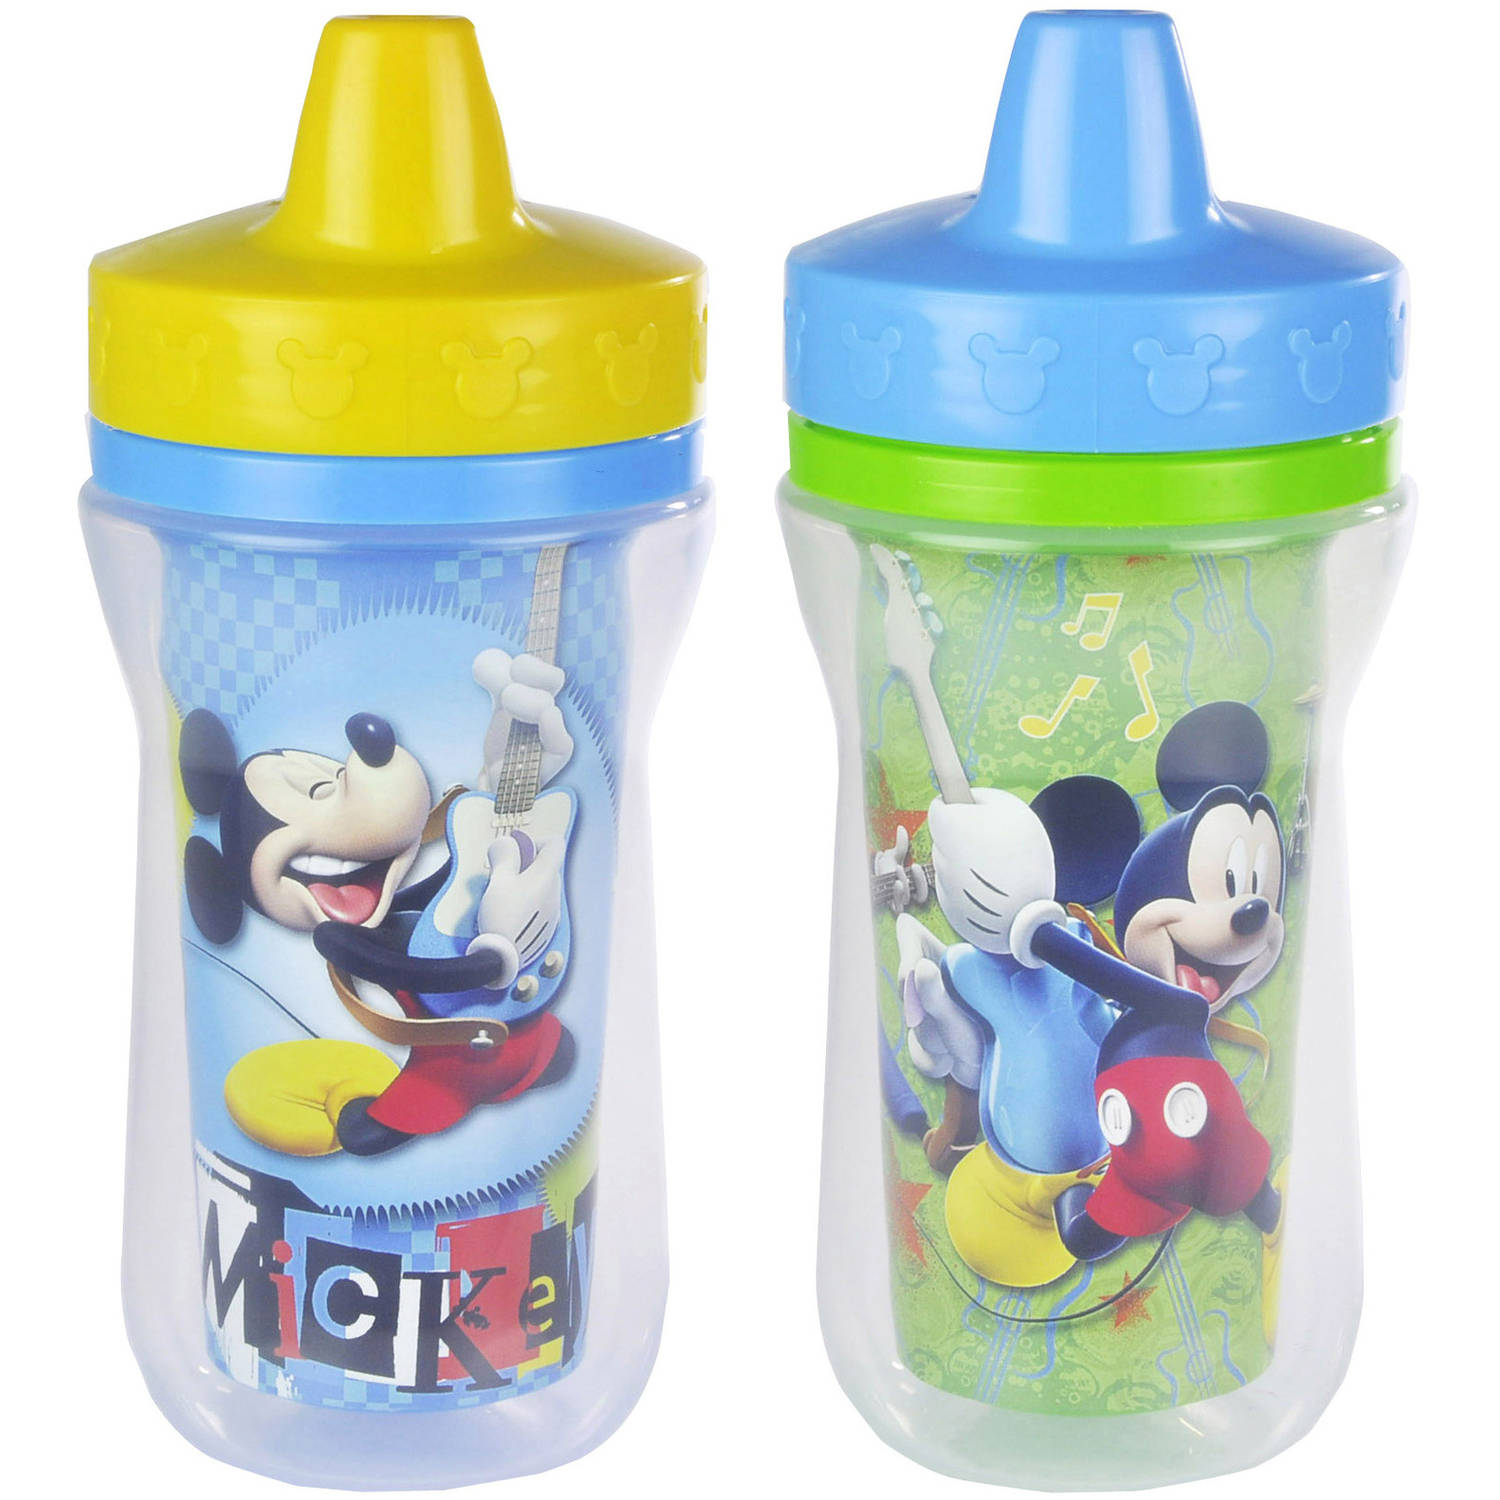 The First Years Disney Baby Mickey Mouse Insulated Sippy Cup with One Piece Lid, BPA-Free -  9 oz, 2 pack